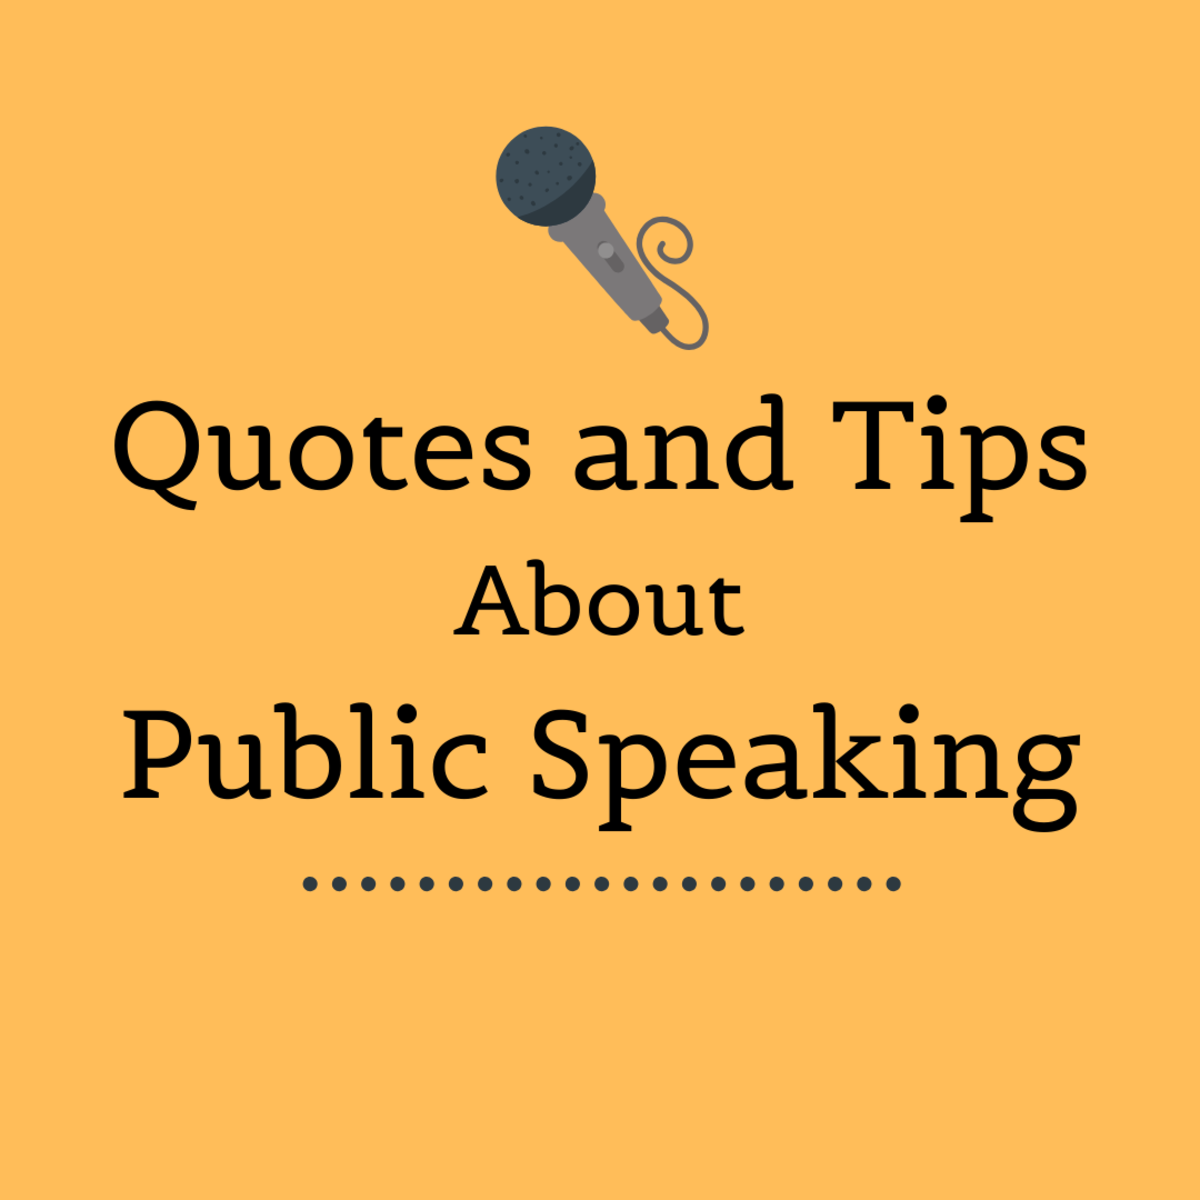 Read some inspirational quotes on public speaking, and get advice on becoming a better and more confident speaker.